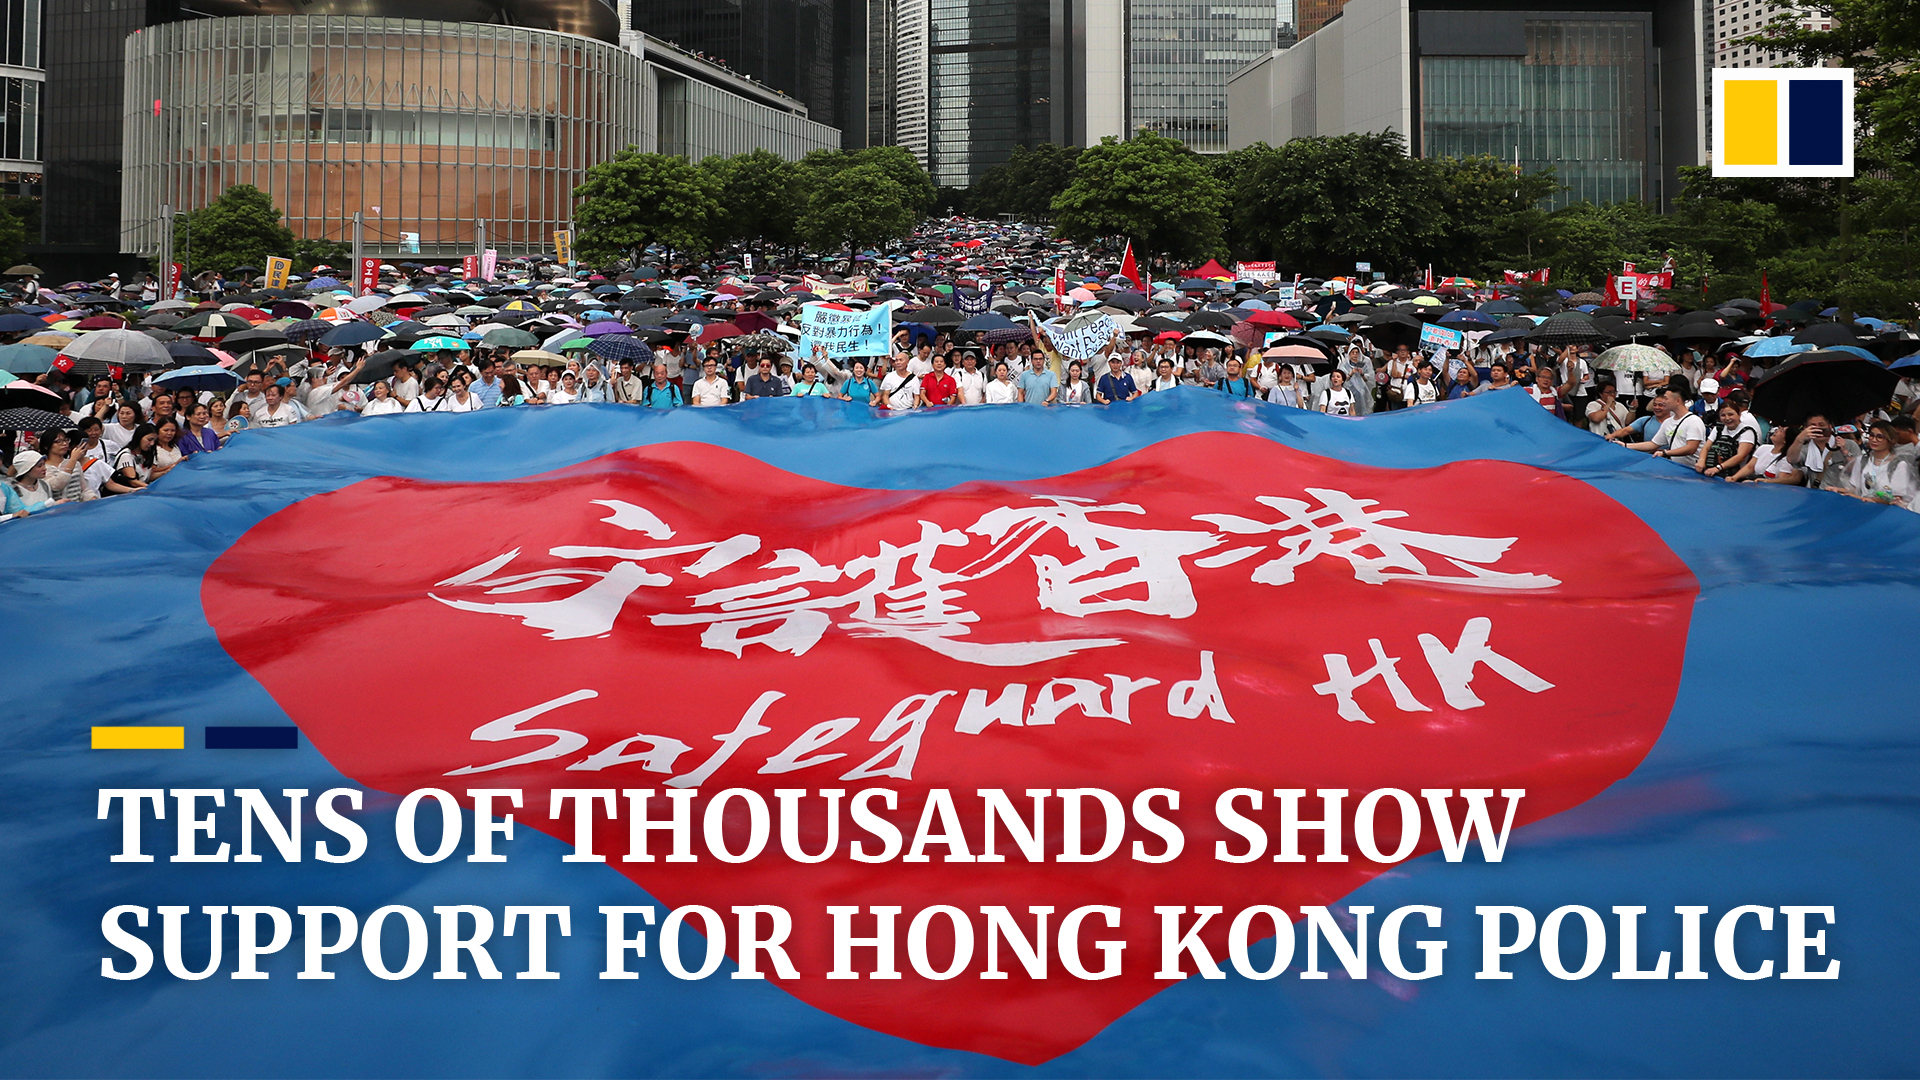 e9f8c909dee Hong Kong pro-police rally attracts hundreds of thousands calling ...